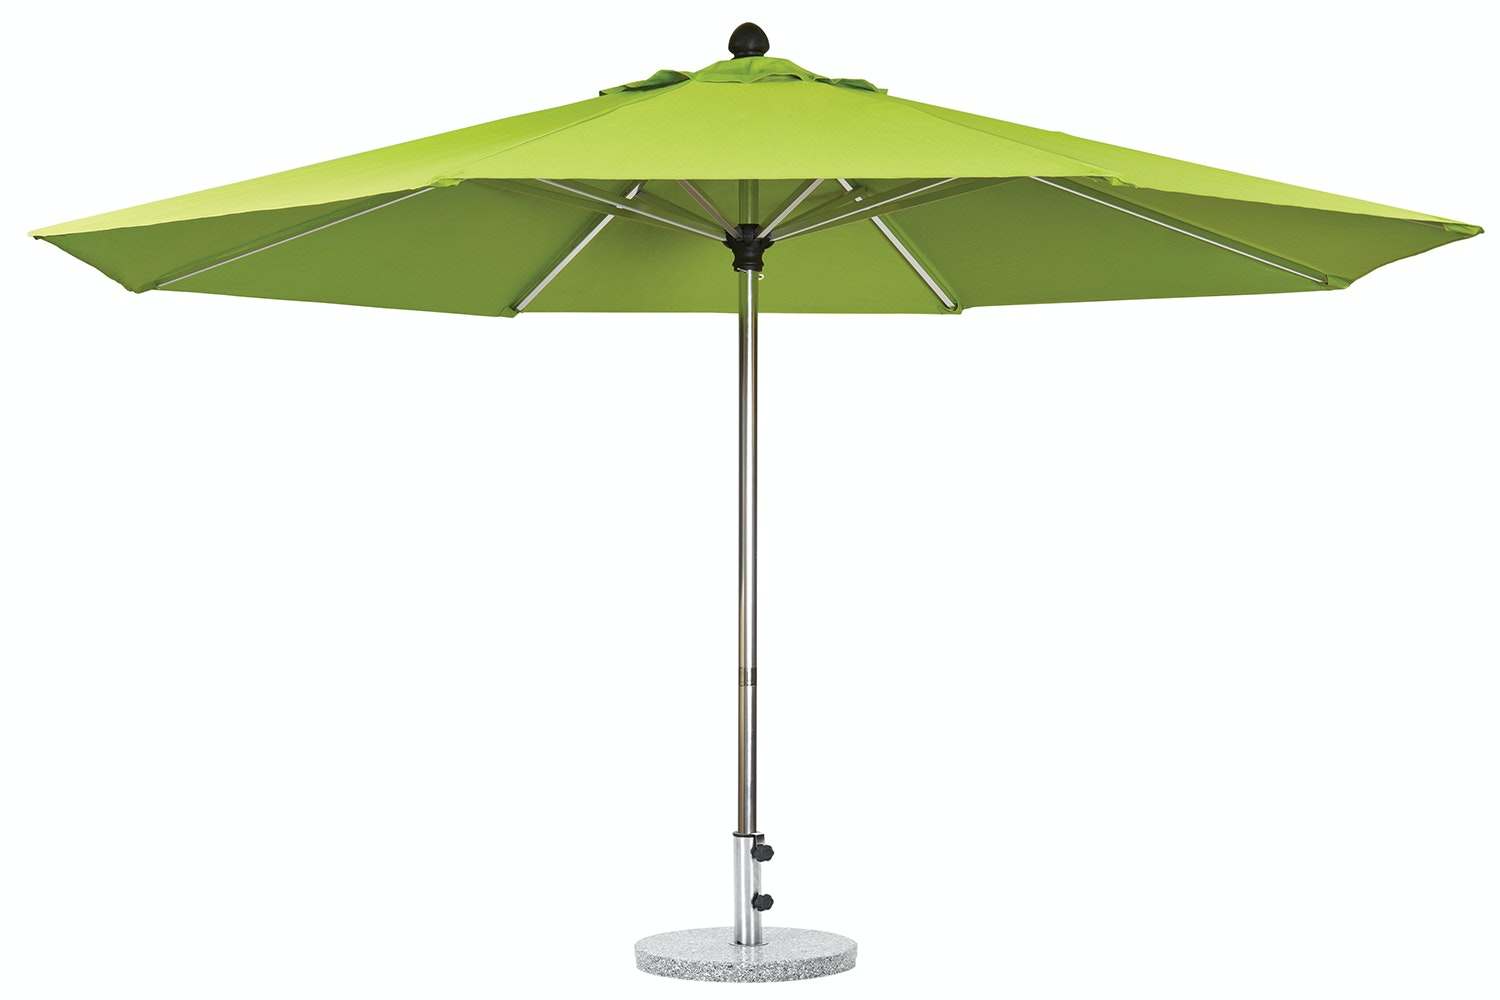 Triton 3.5m  Lime Green Outdoor Umbrella with 25kg Granite Base by Peros